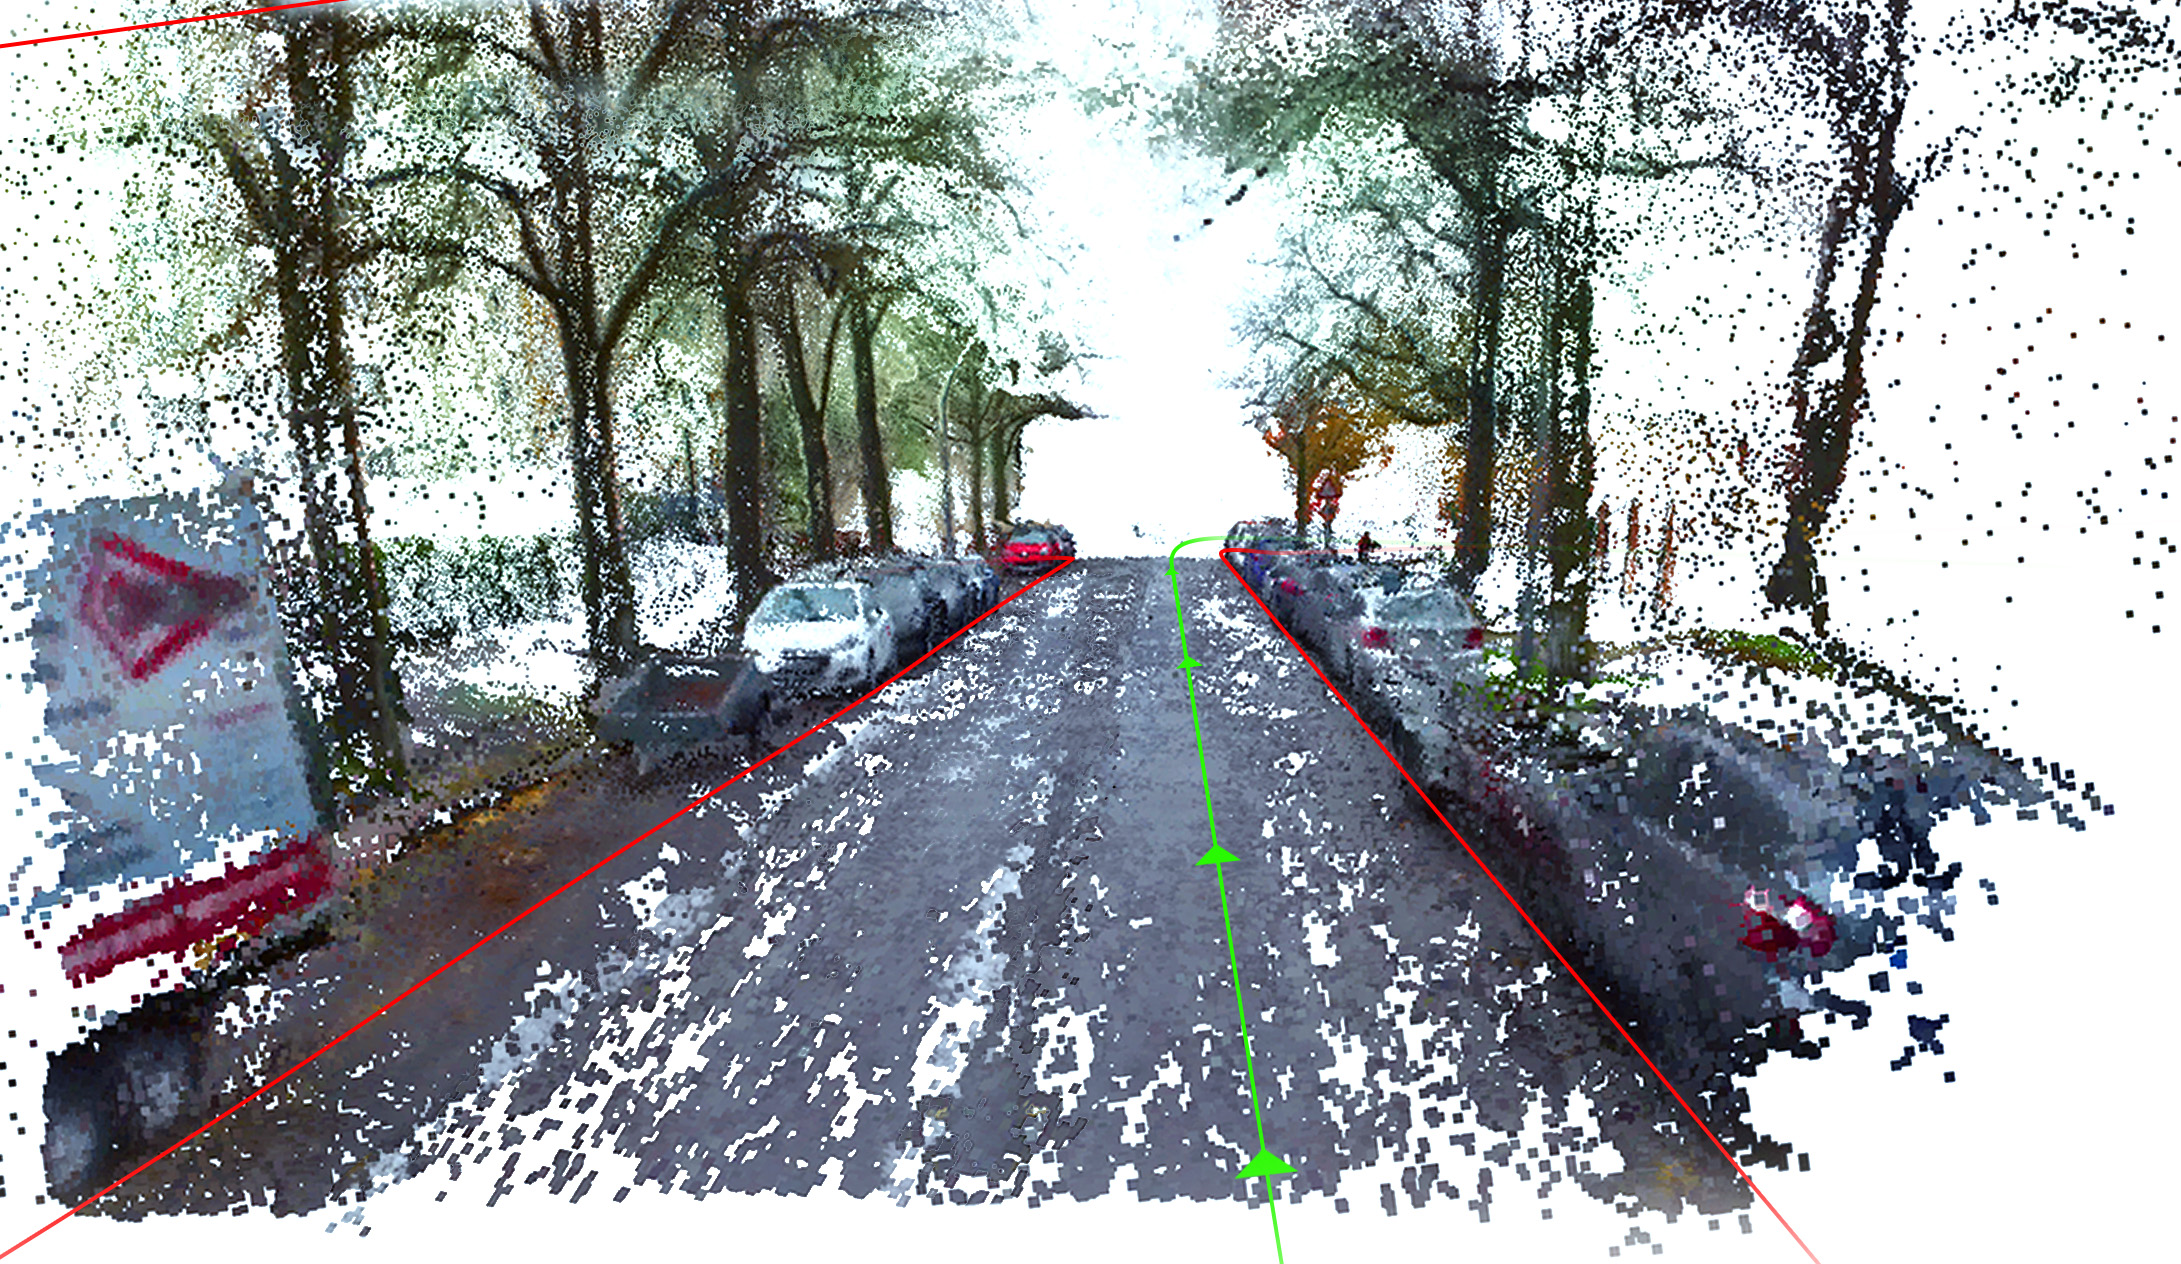 Combining SLAM and dense 3D Reconstruction enables the generation of high definition 3D maps from moving cameras mounted on a vehicle.